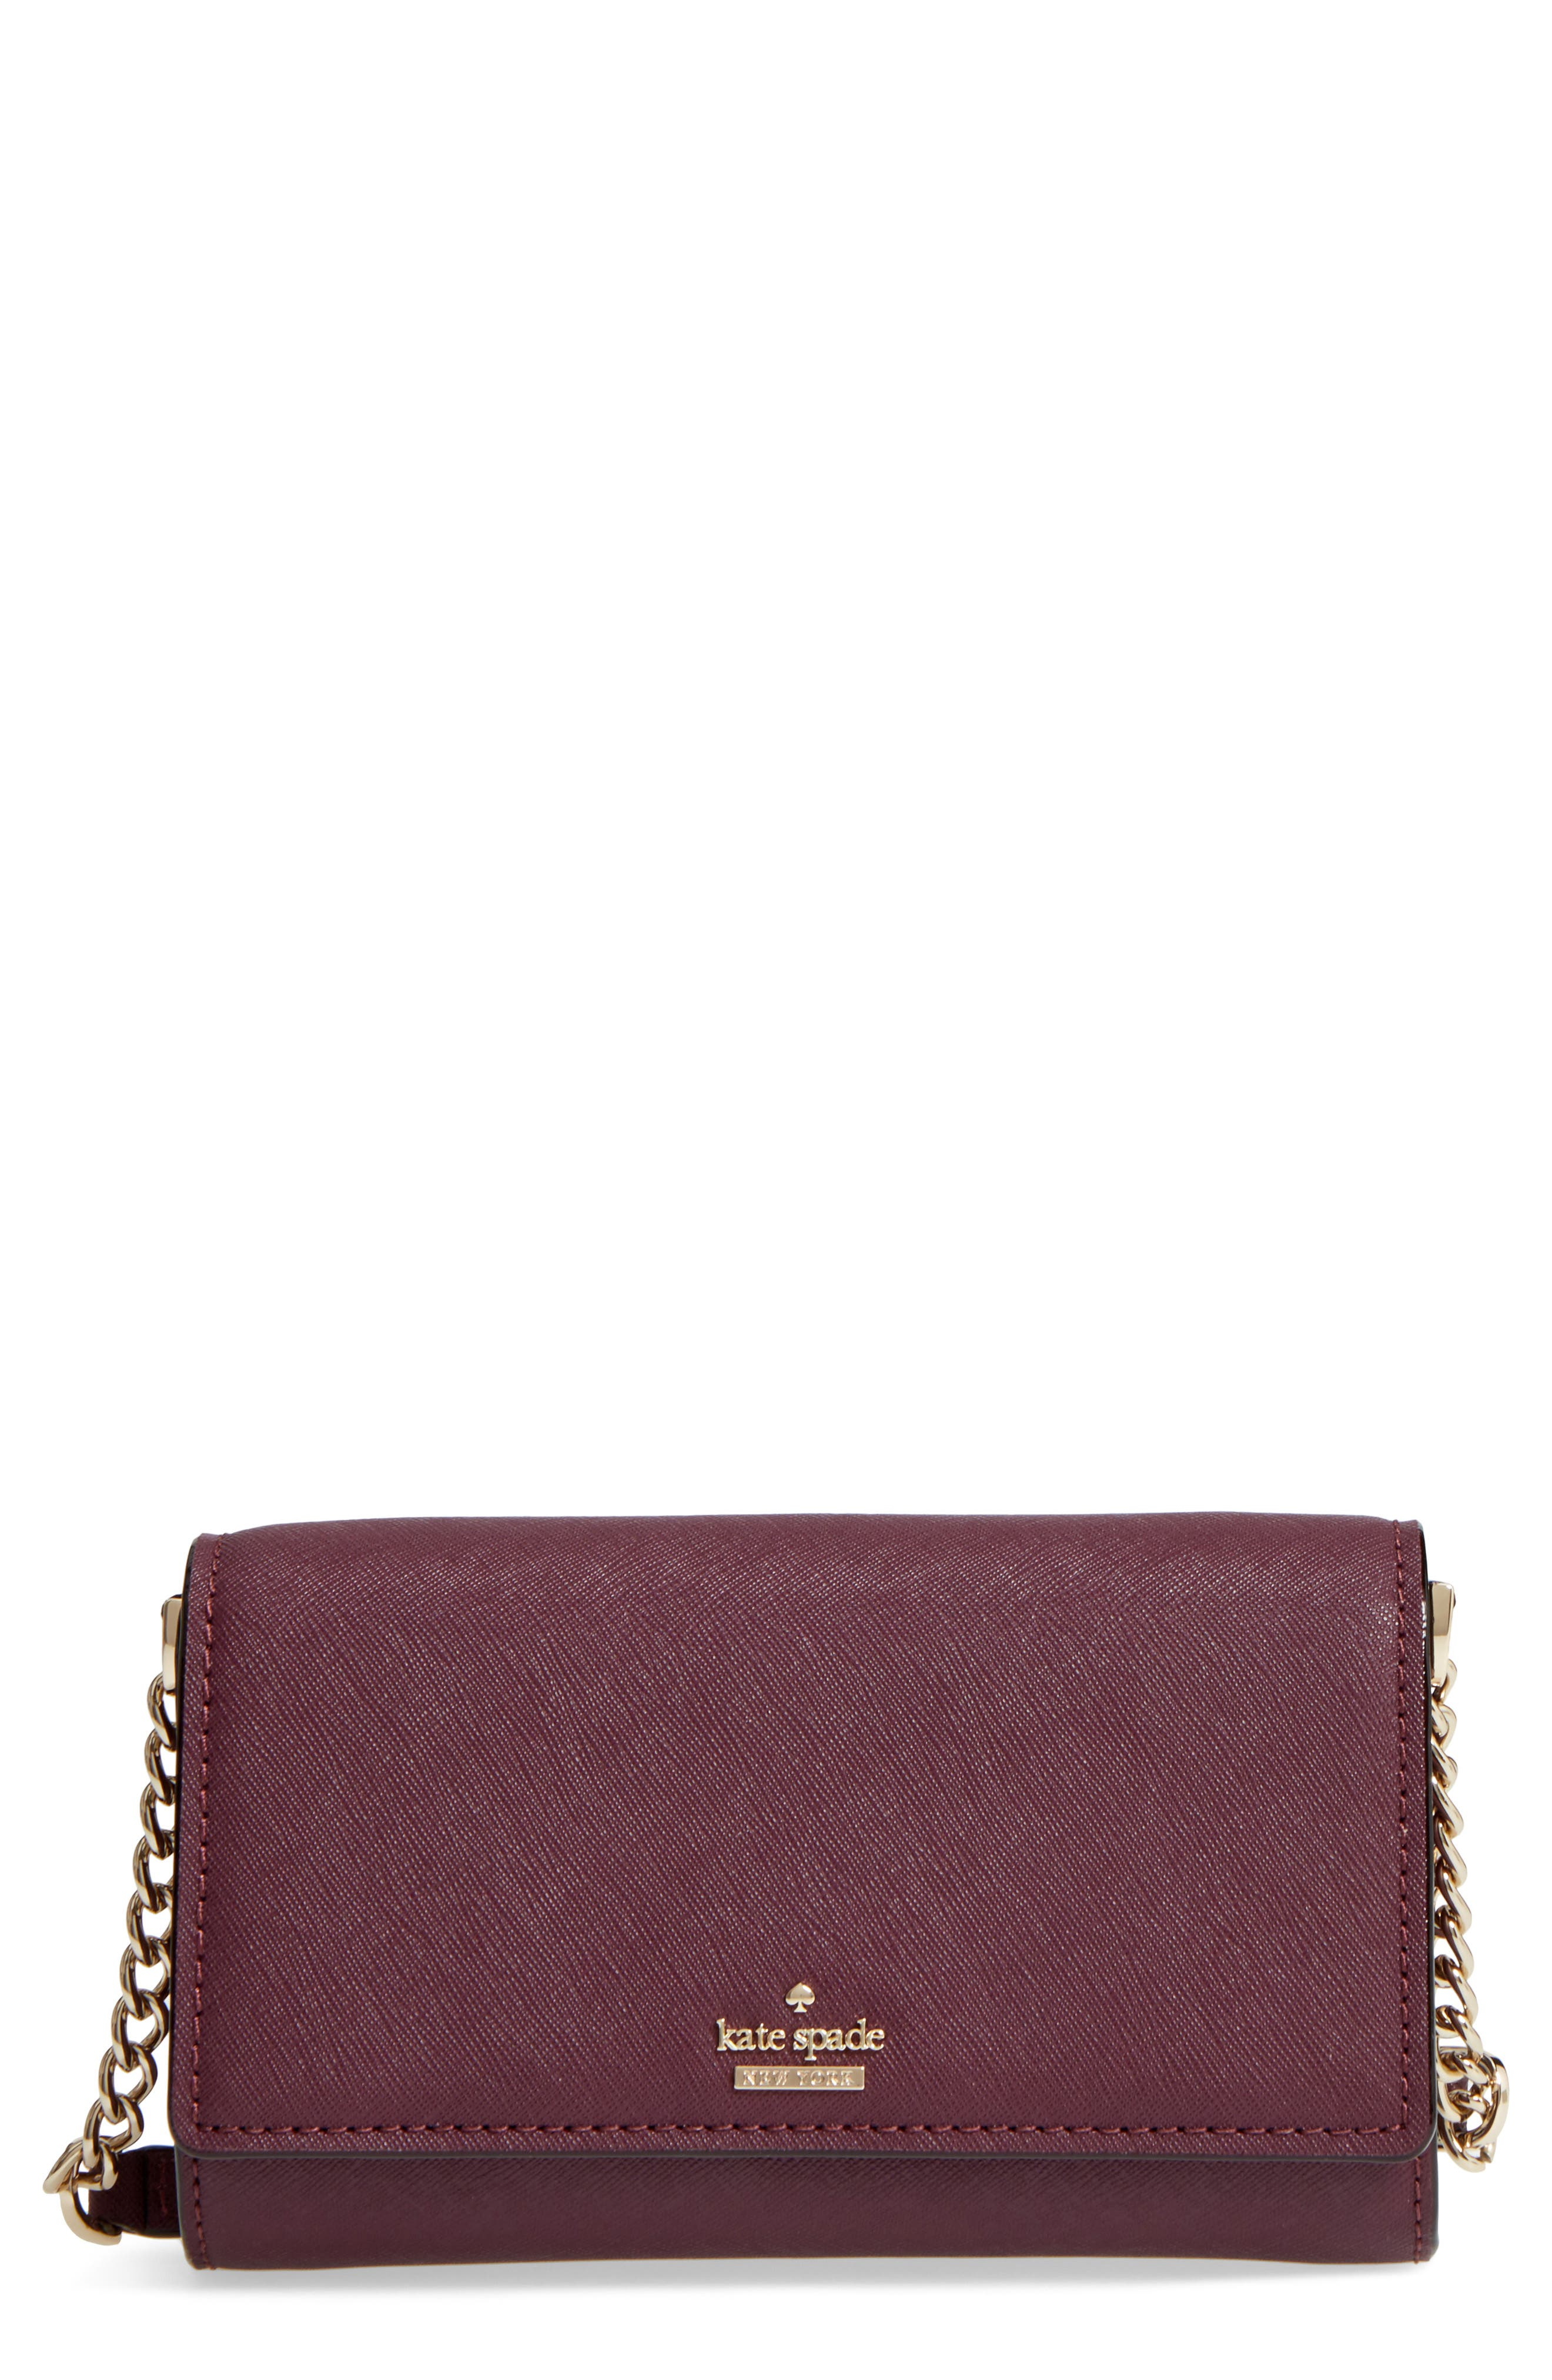 kate spade new york cameron street - corin crossbody bag